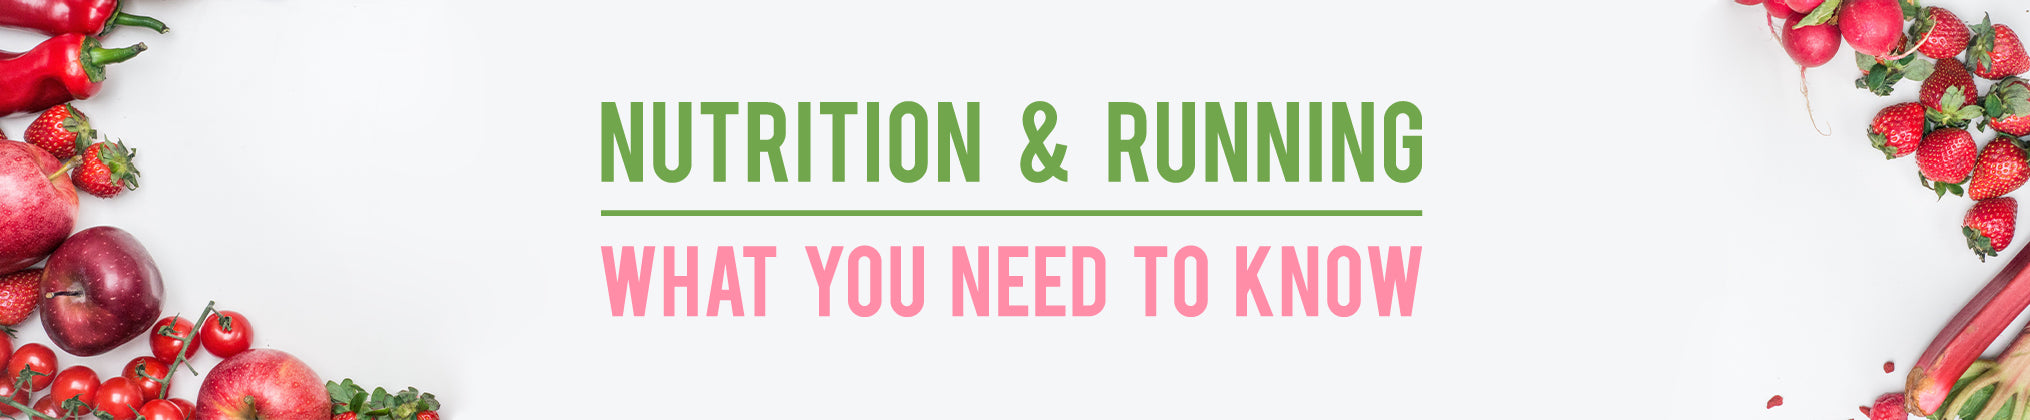 Nutrition and Running what you need to know